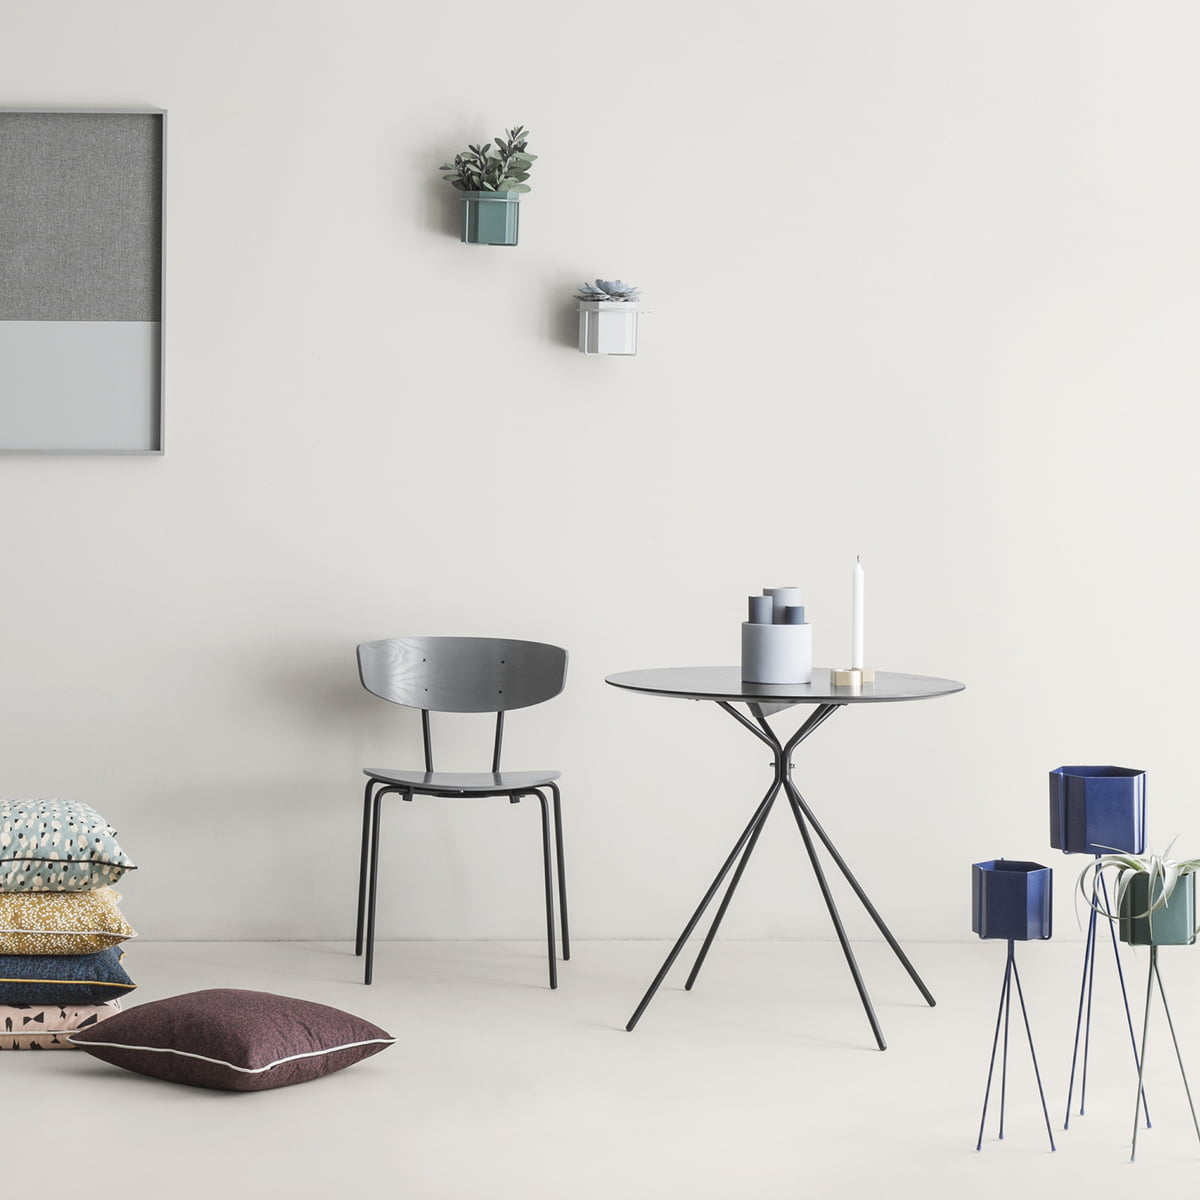 products by ferm living and herman studio. plant stand by ferm living in the shop